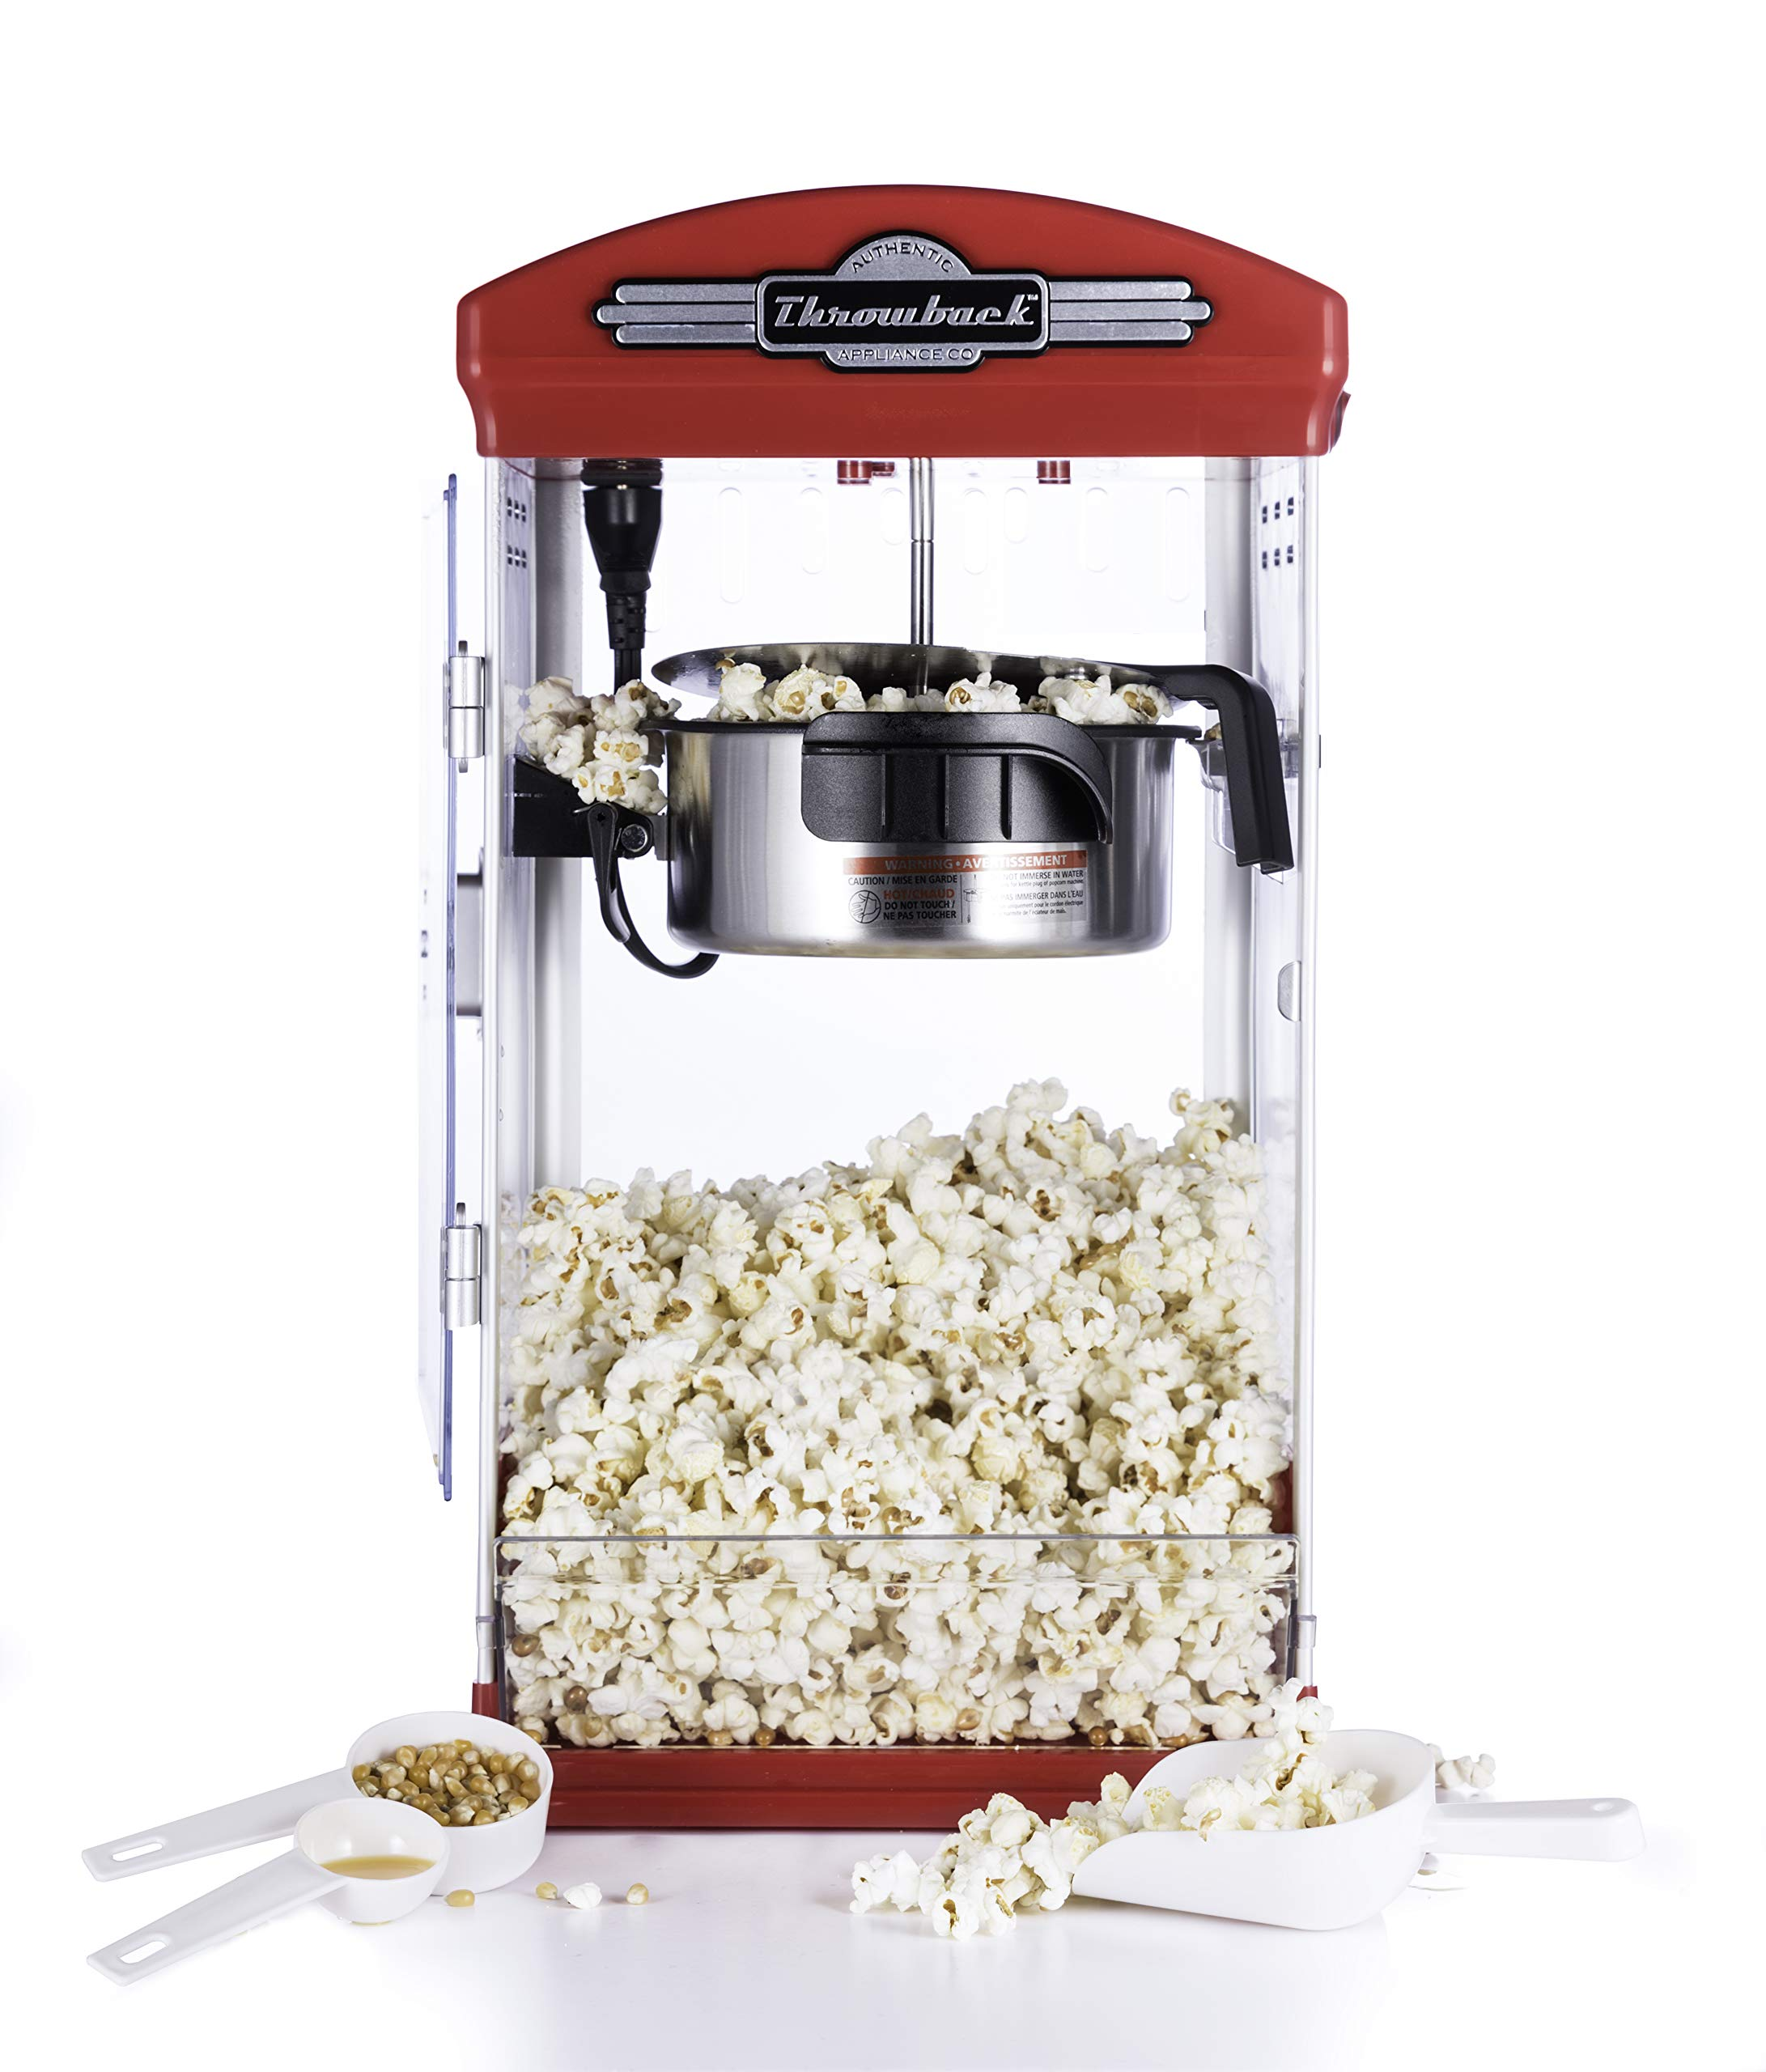 Throwback (60030) Vintage-Inspired Theatre Kettle Style Popcorn Maker, Red